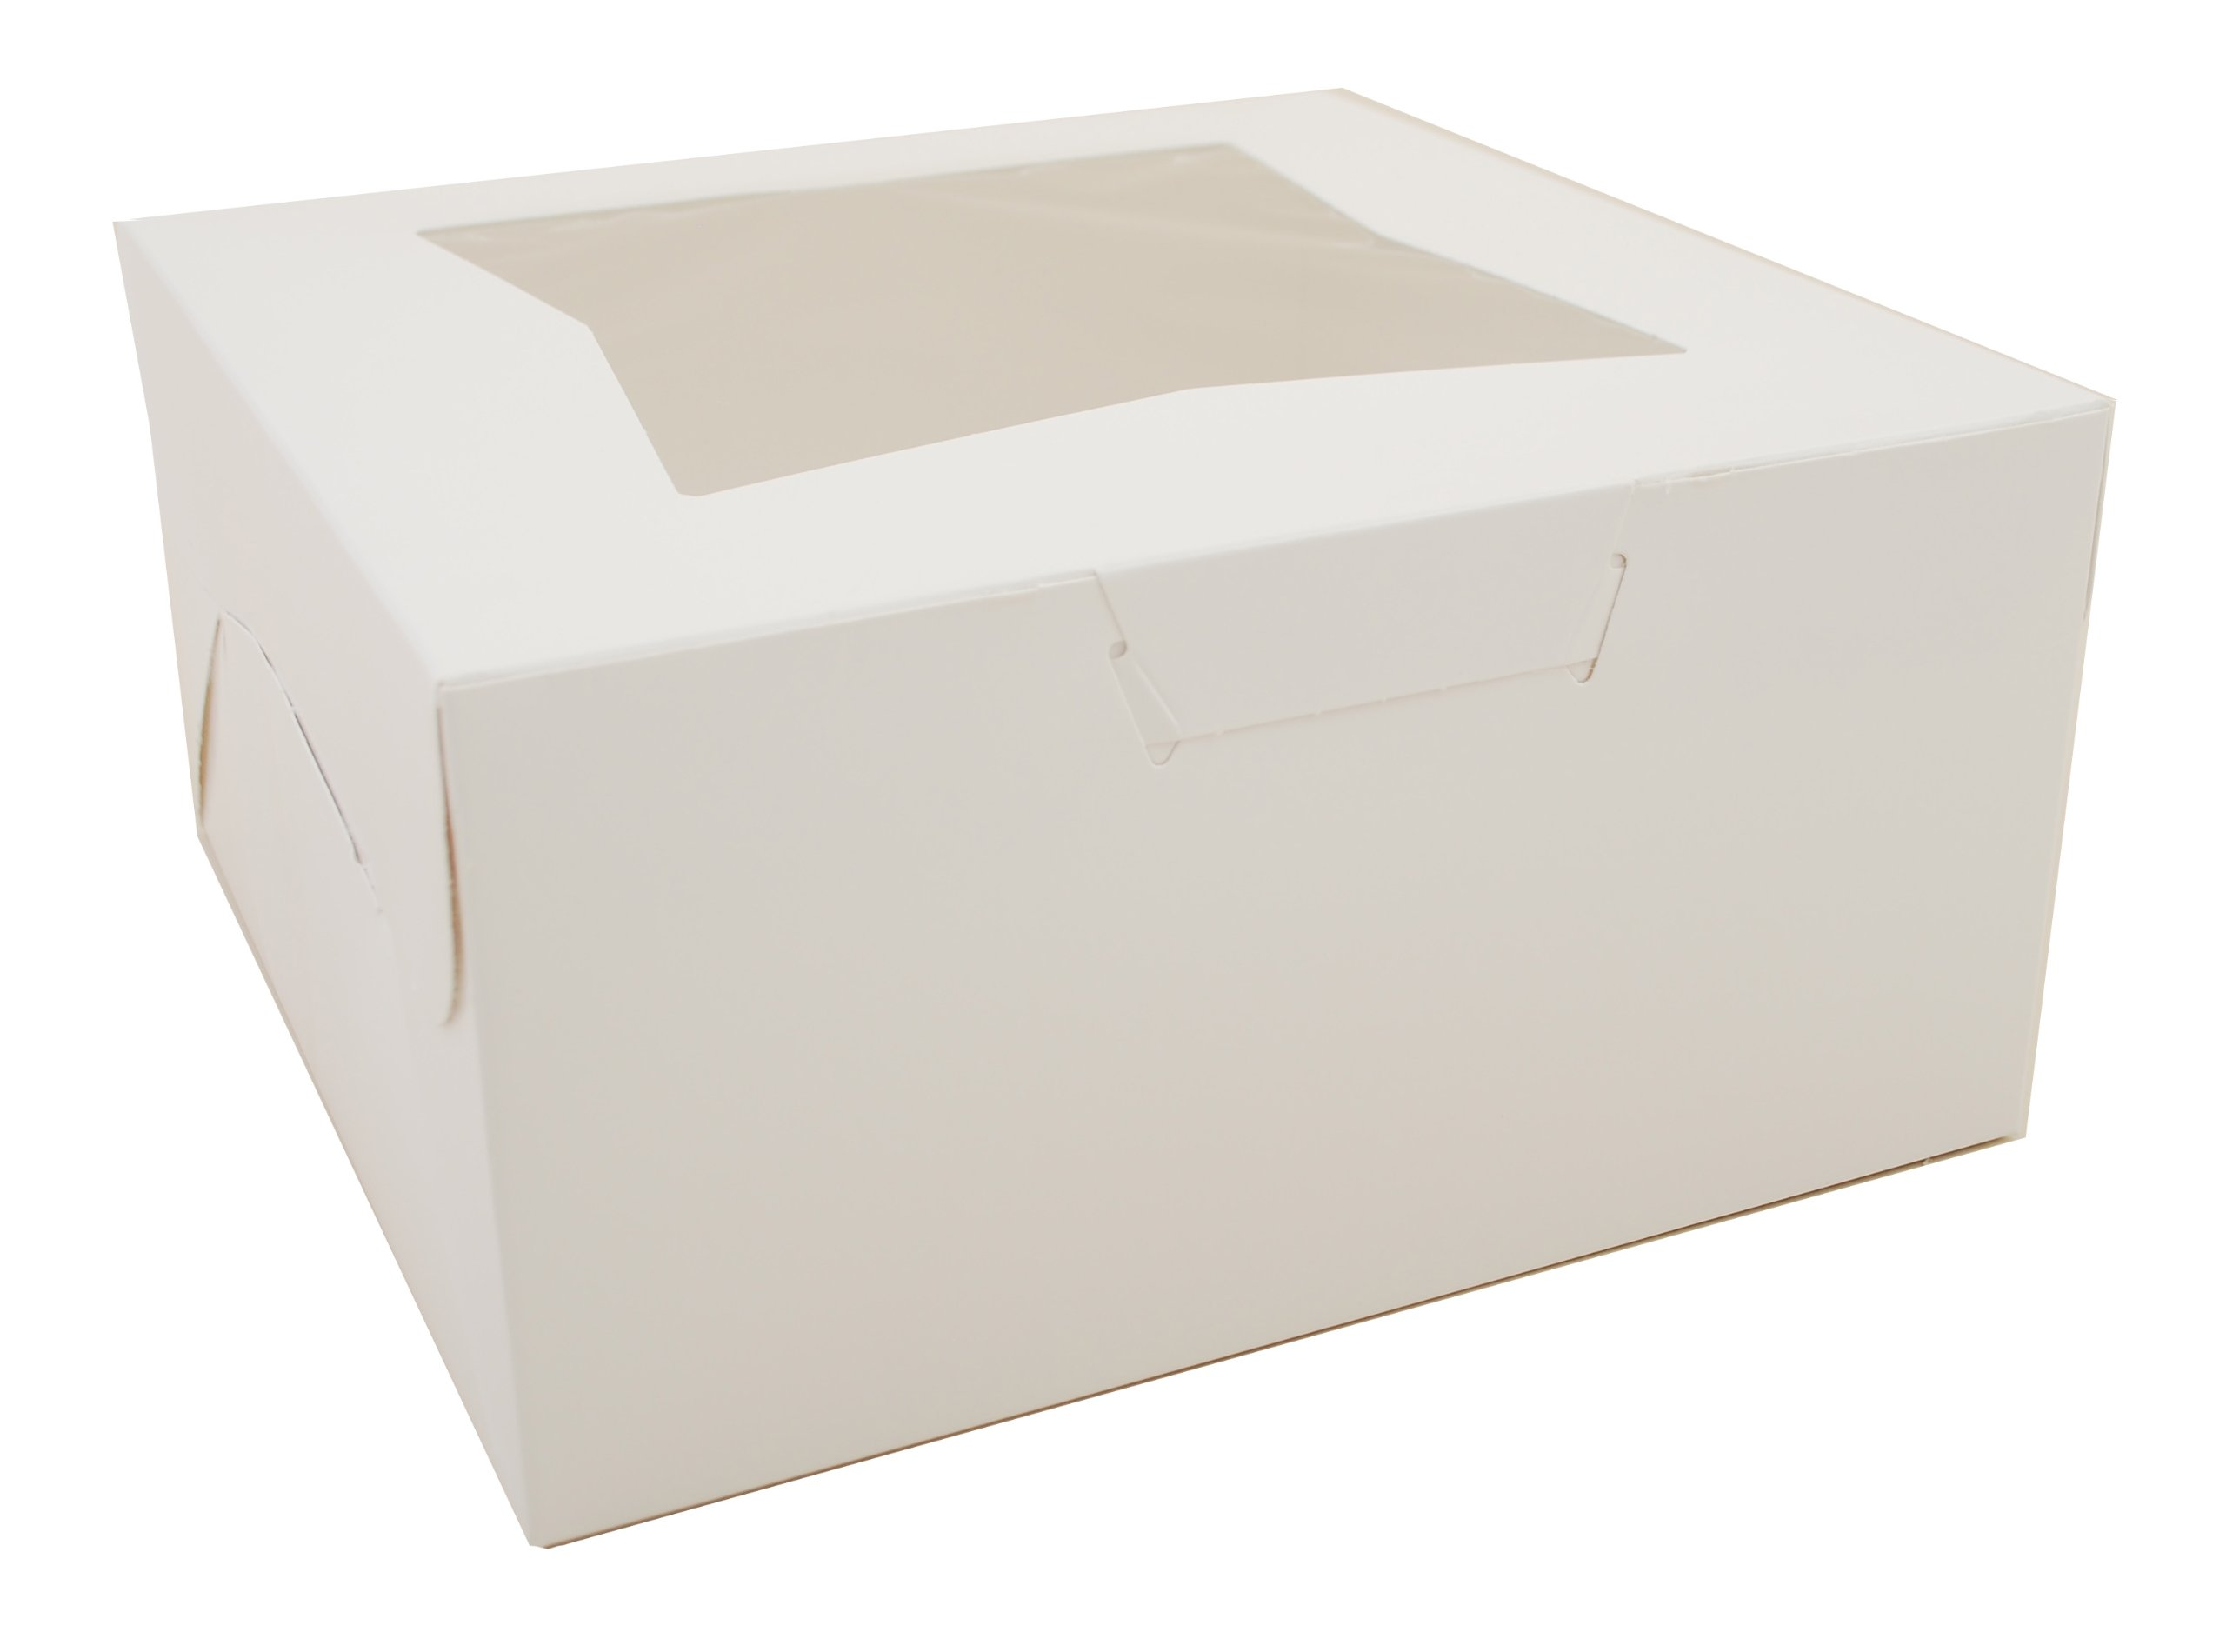 Southern Champion Tray 23053 Paperboard White Lock Corner Window Bakery Box, 10'' Length x 10'' Width x 5'' Height (Case of 150)